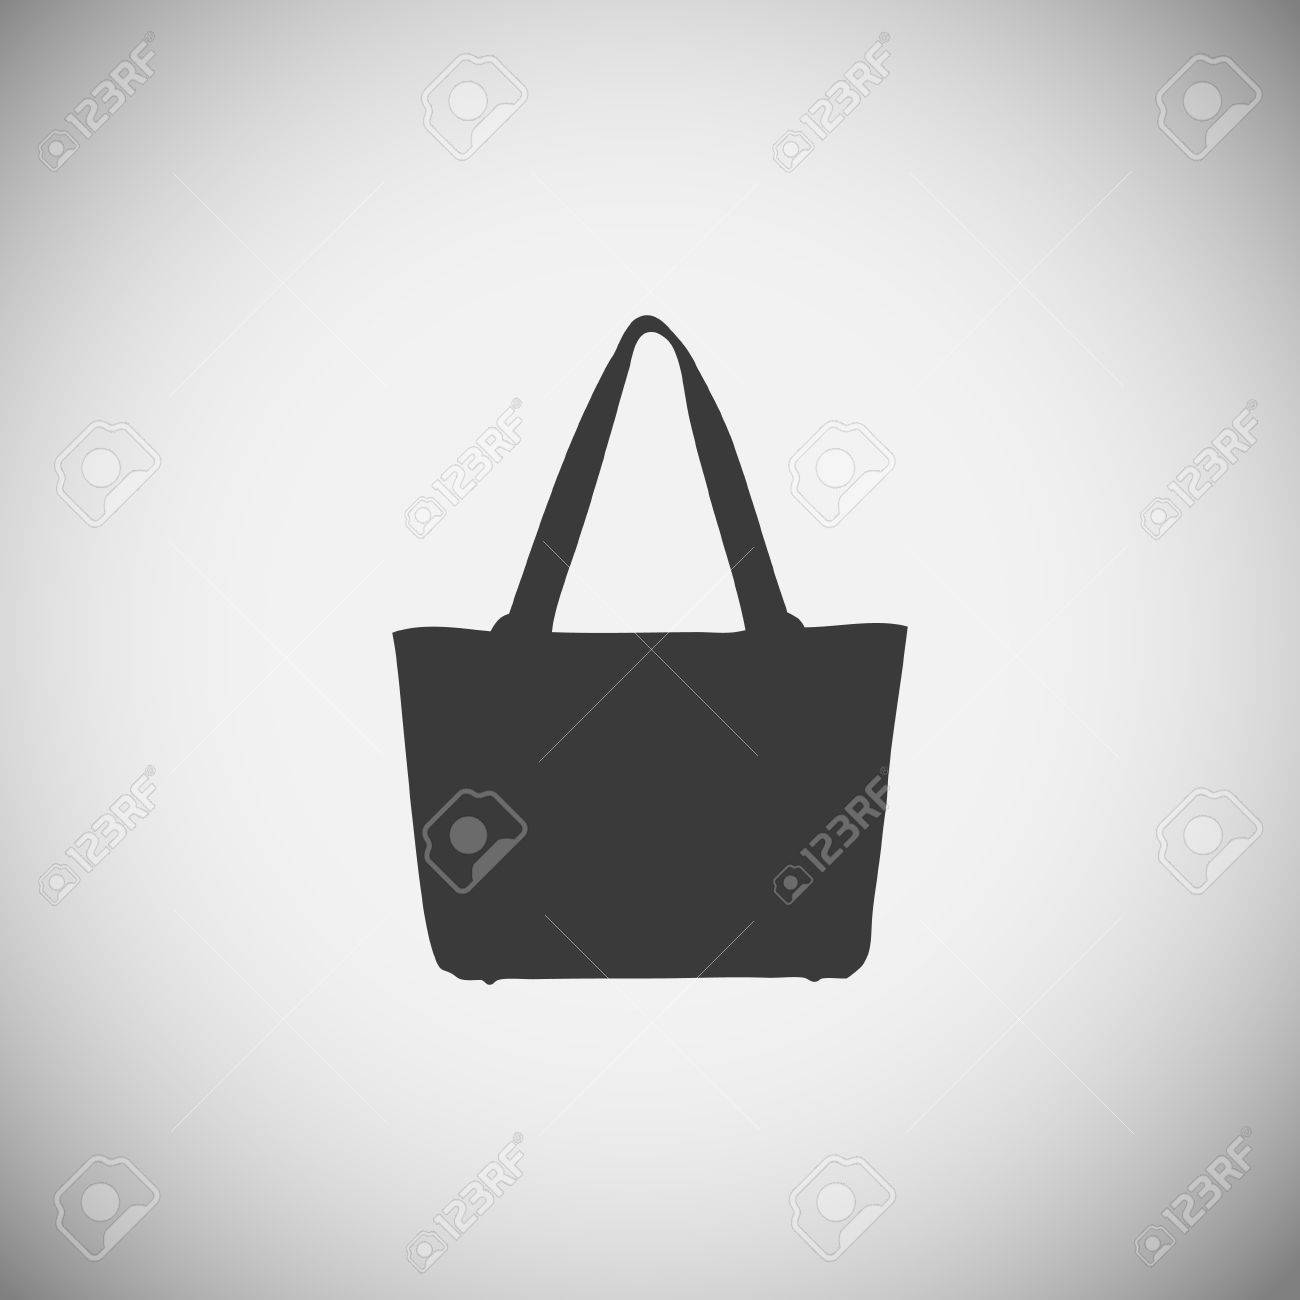 Bags wood application icons Stock Vector - 22258744